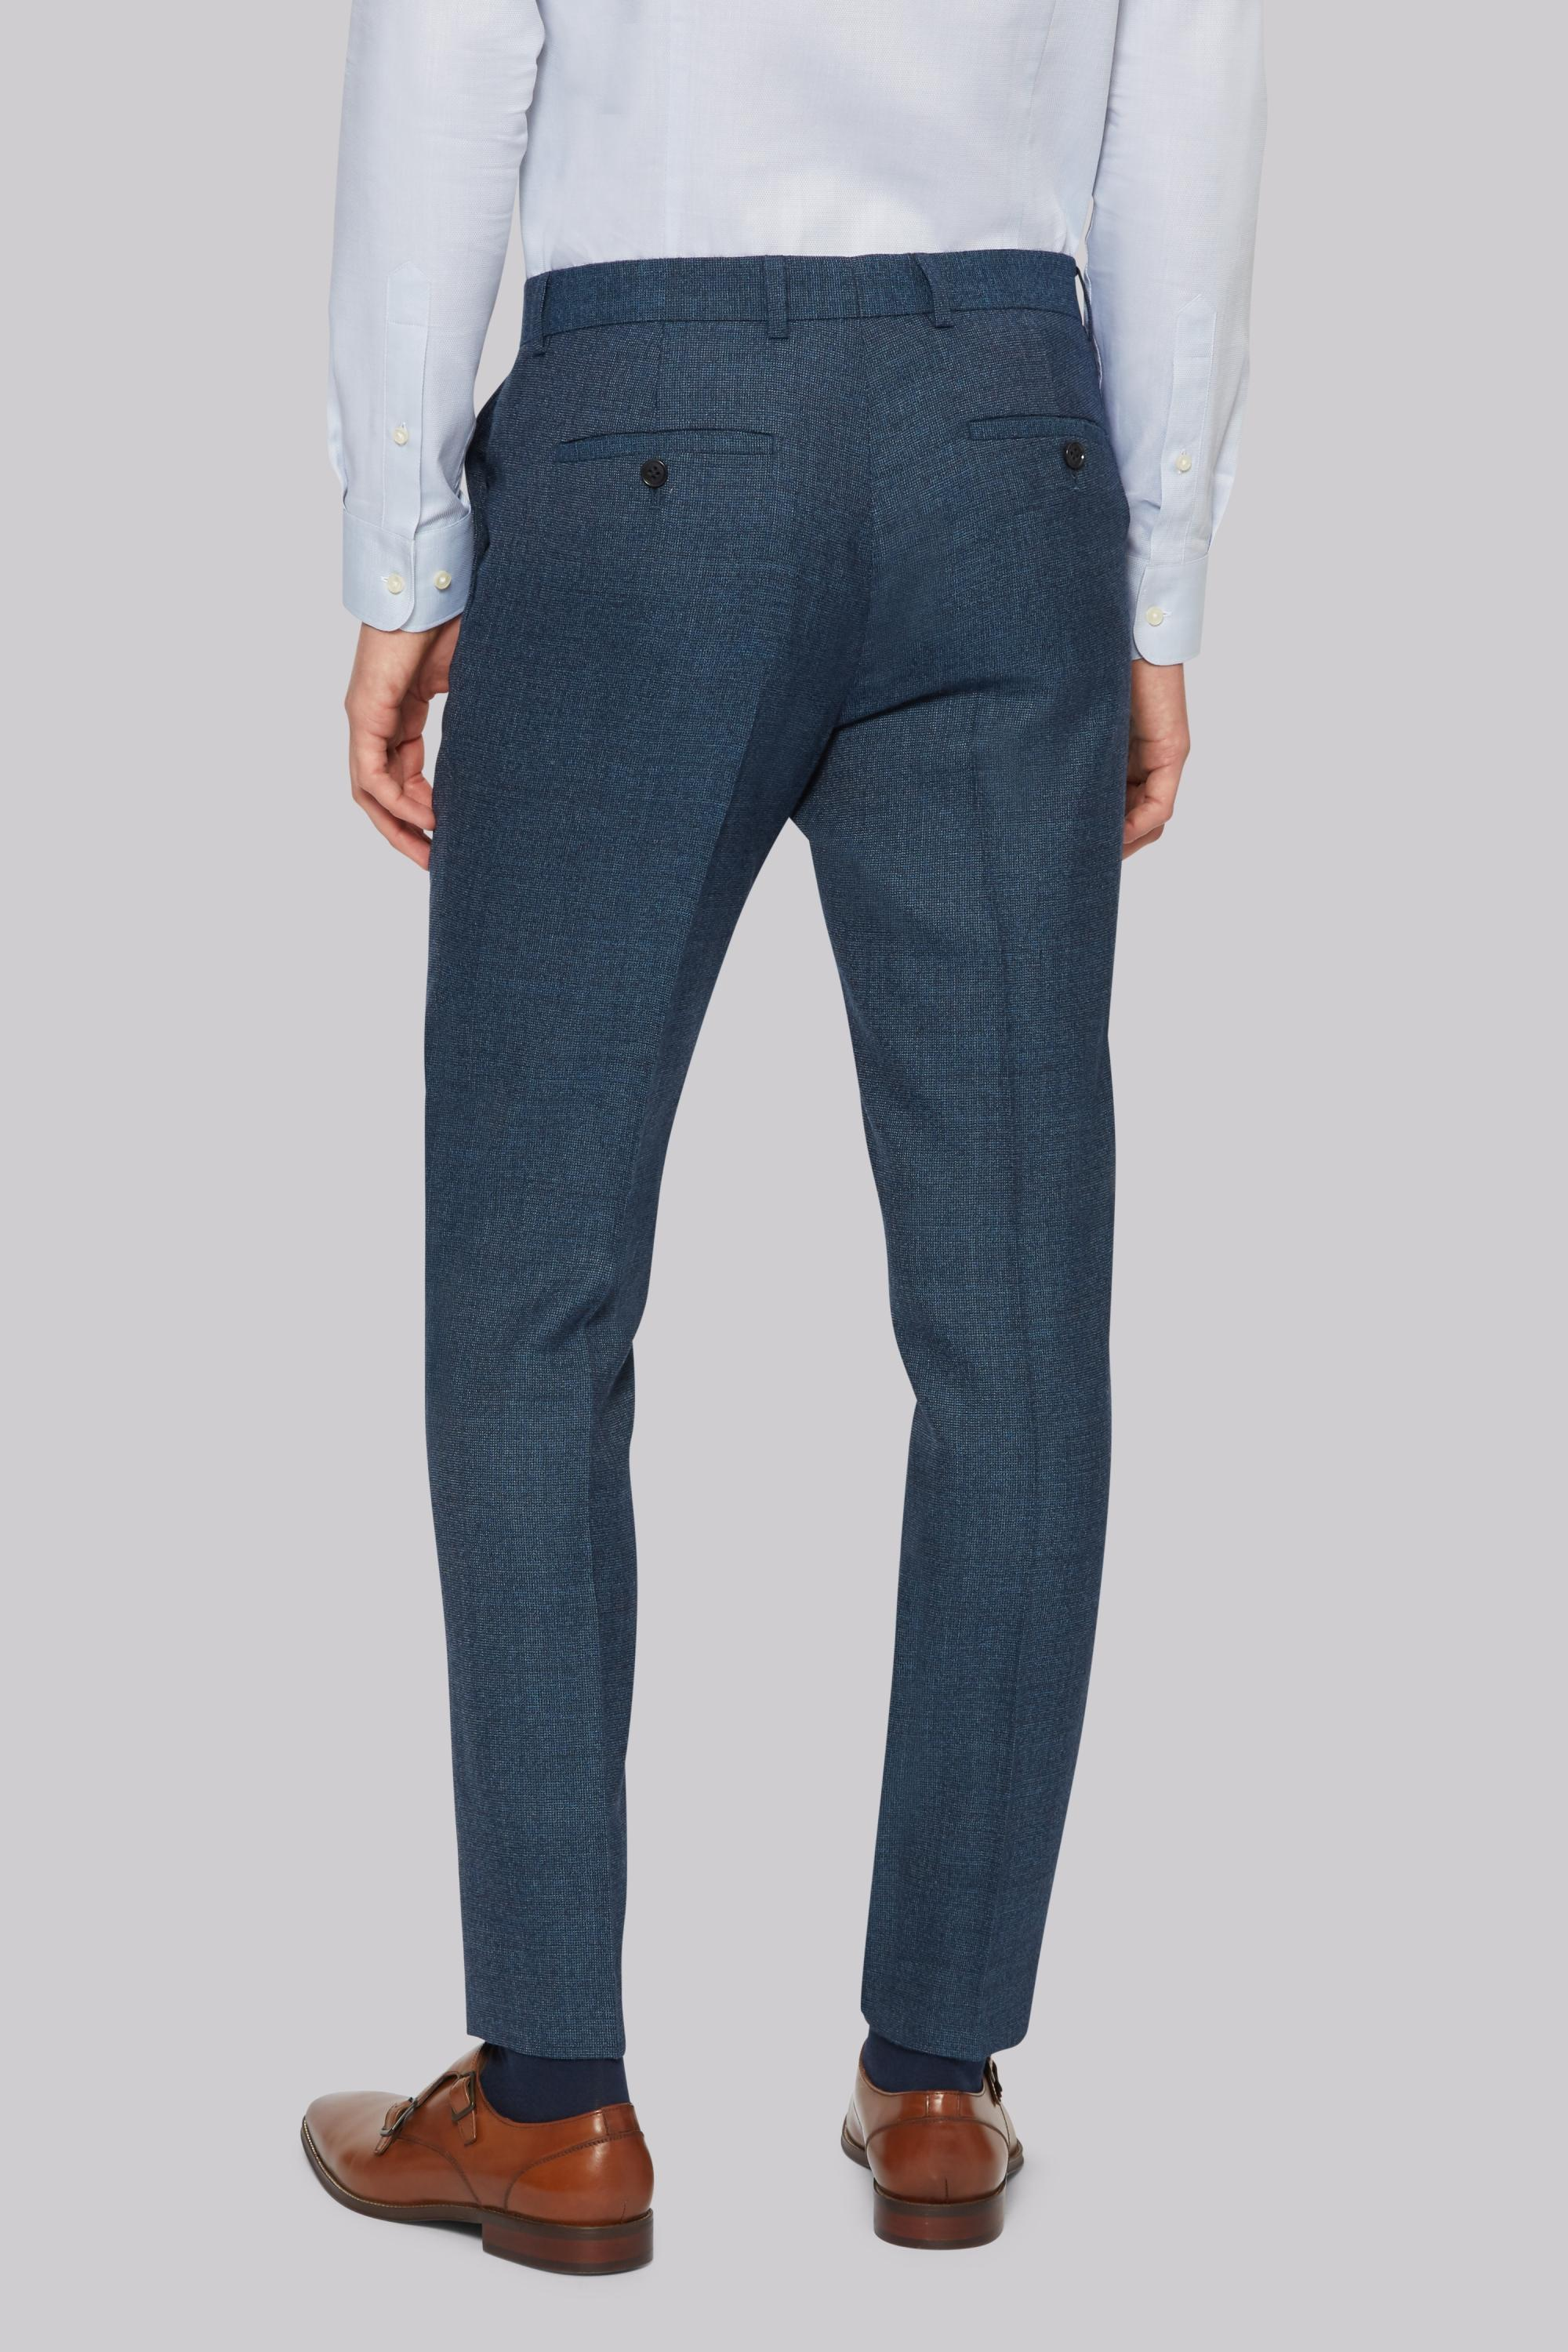 Moss London Wool Skinny Fit Bright Blue Texture Trousers for Men